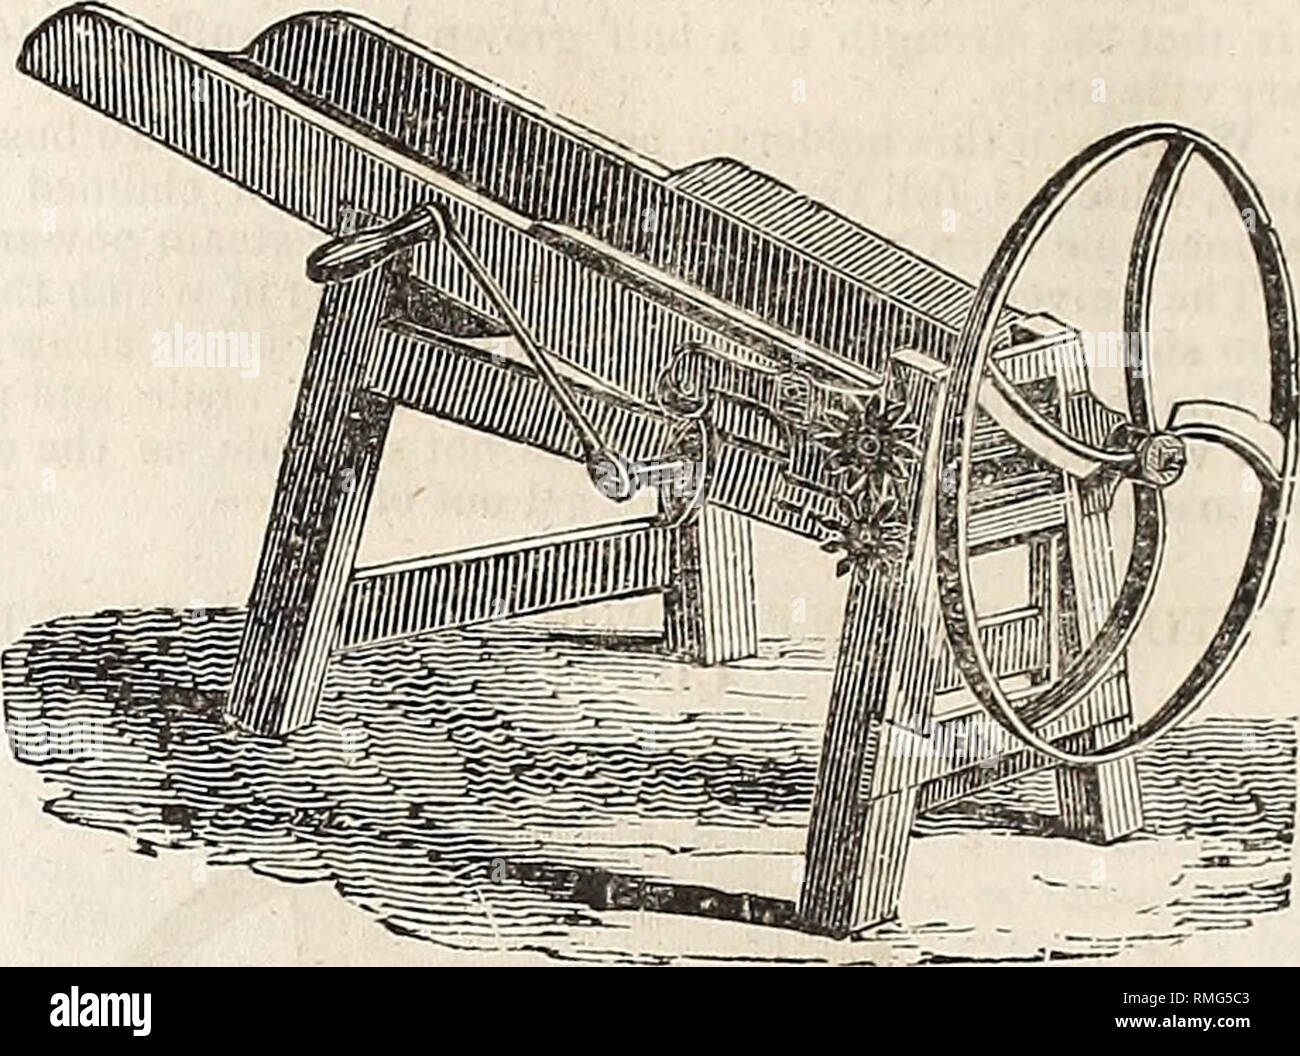 . Annual catalogue of the New England Agricultural Warehouse and Seed Store, connected with the New England Farmer Office, No. 51 & 52 North Market Street, Boston. 44 J. Breck §? Co.'s Catalogue of WILLIS'S IMPROVED PATENT VERTICAL HAY AND STRAW CUTTER.. This Straw and Hay Cutter which lias been in use for several years, is found from experience to be the best Machine for the pur- pose that has been invented. They are made of the best materials and workmanship: constructed on the best mechanical principles. The knives being placed in such a manner, as to operate as a drawing stroke ; cuts  - Stock Image